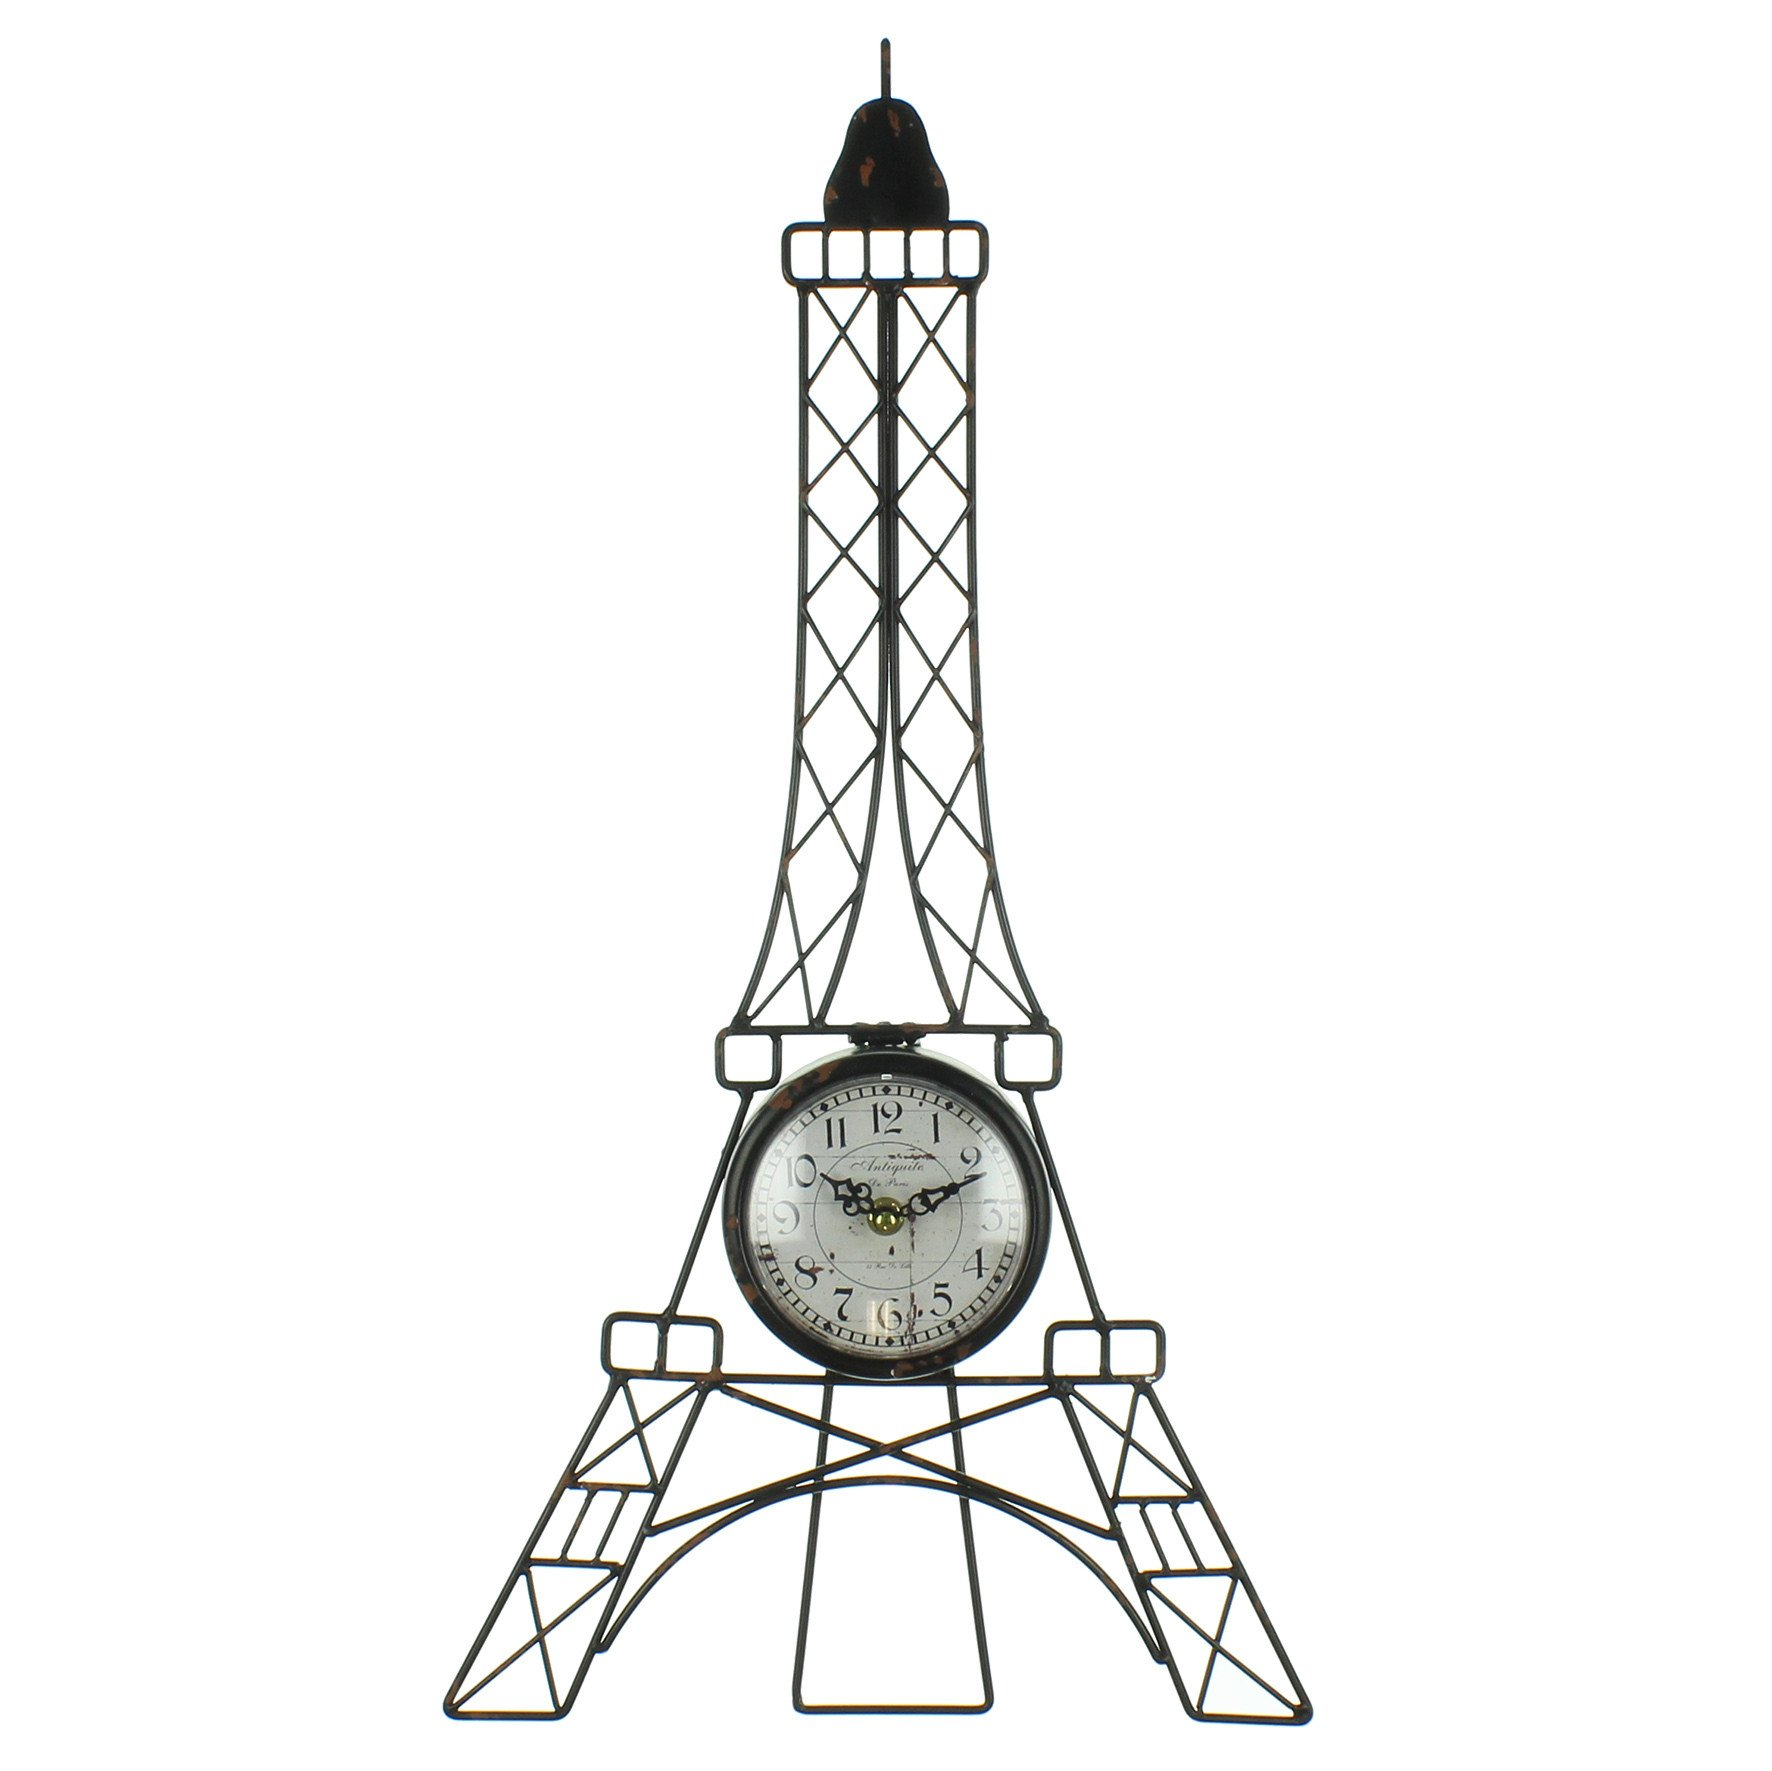 1772x1771 Hometime Wire Eiffel Tower Wall Clock With White Arabic Dial W7634